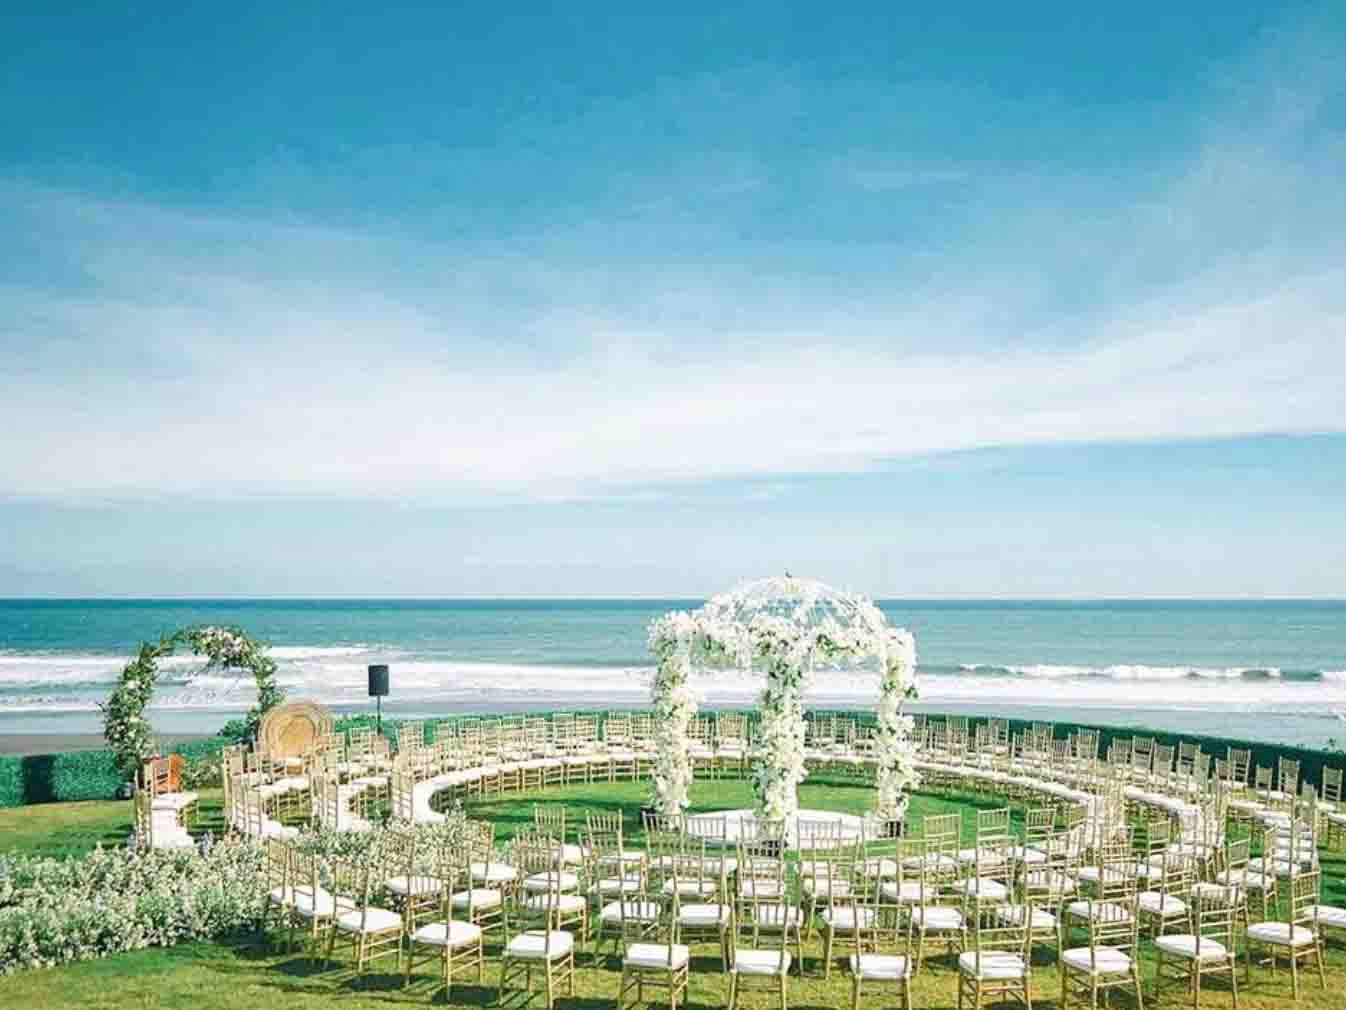 Soori Bali - Bali - venues - PRODUCT PHOTO - 1b4b7b10b13b16b2b